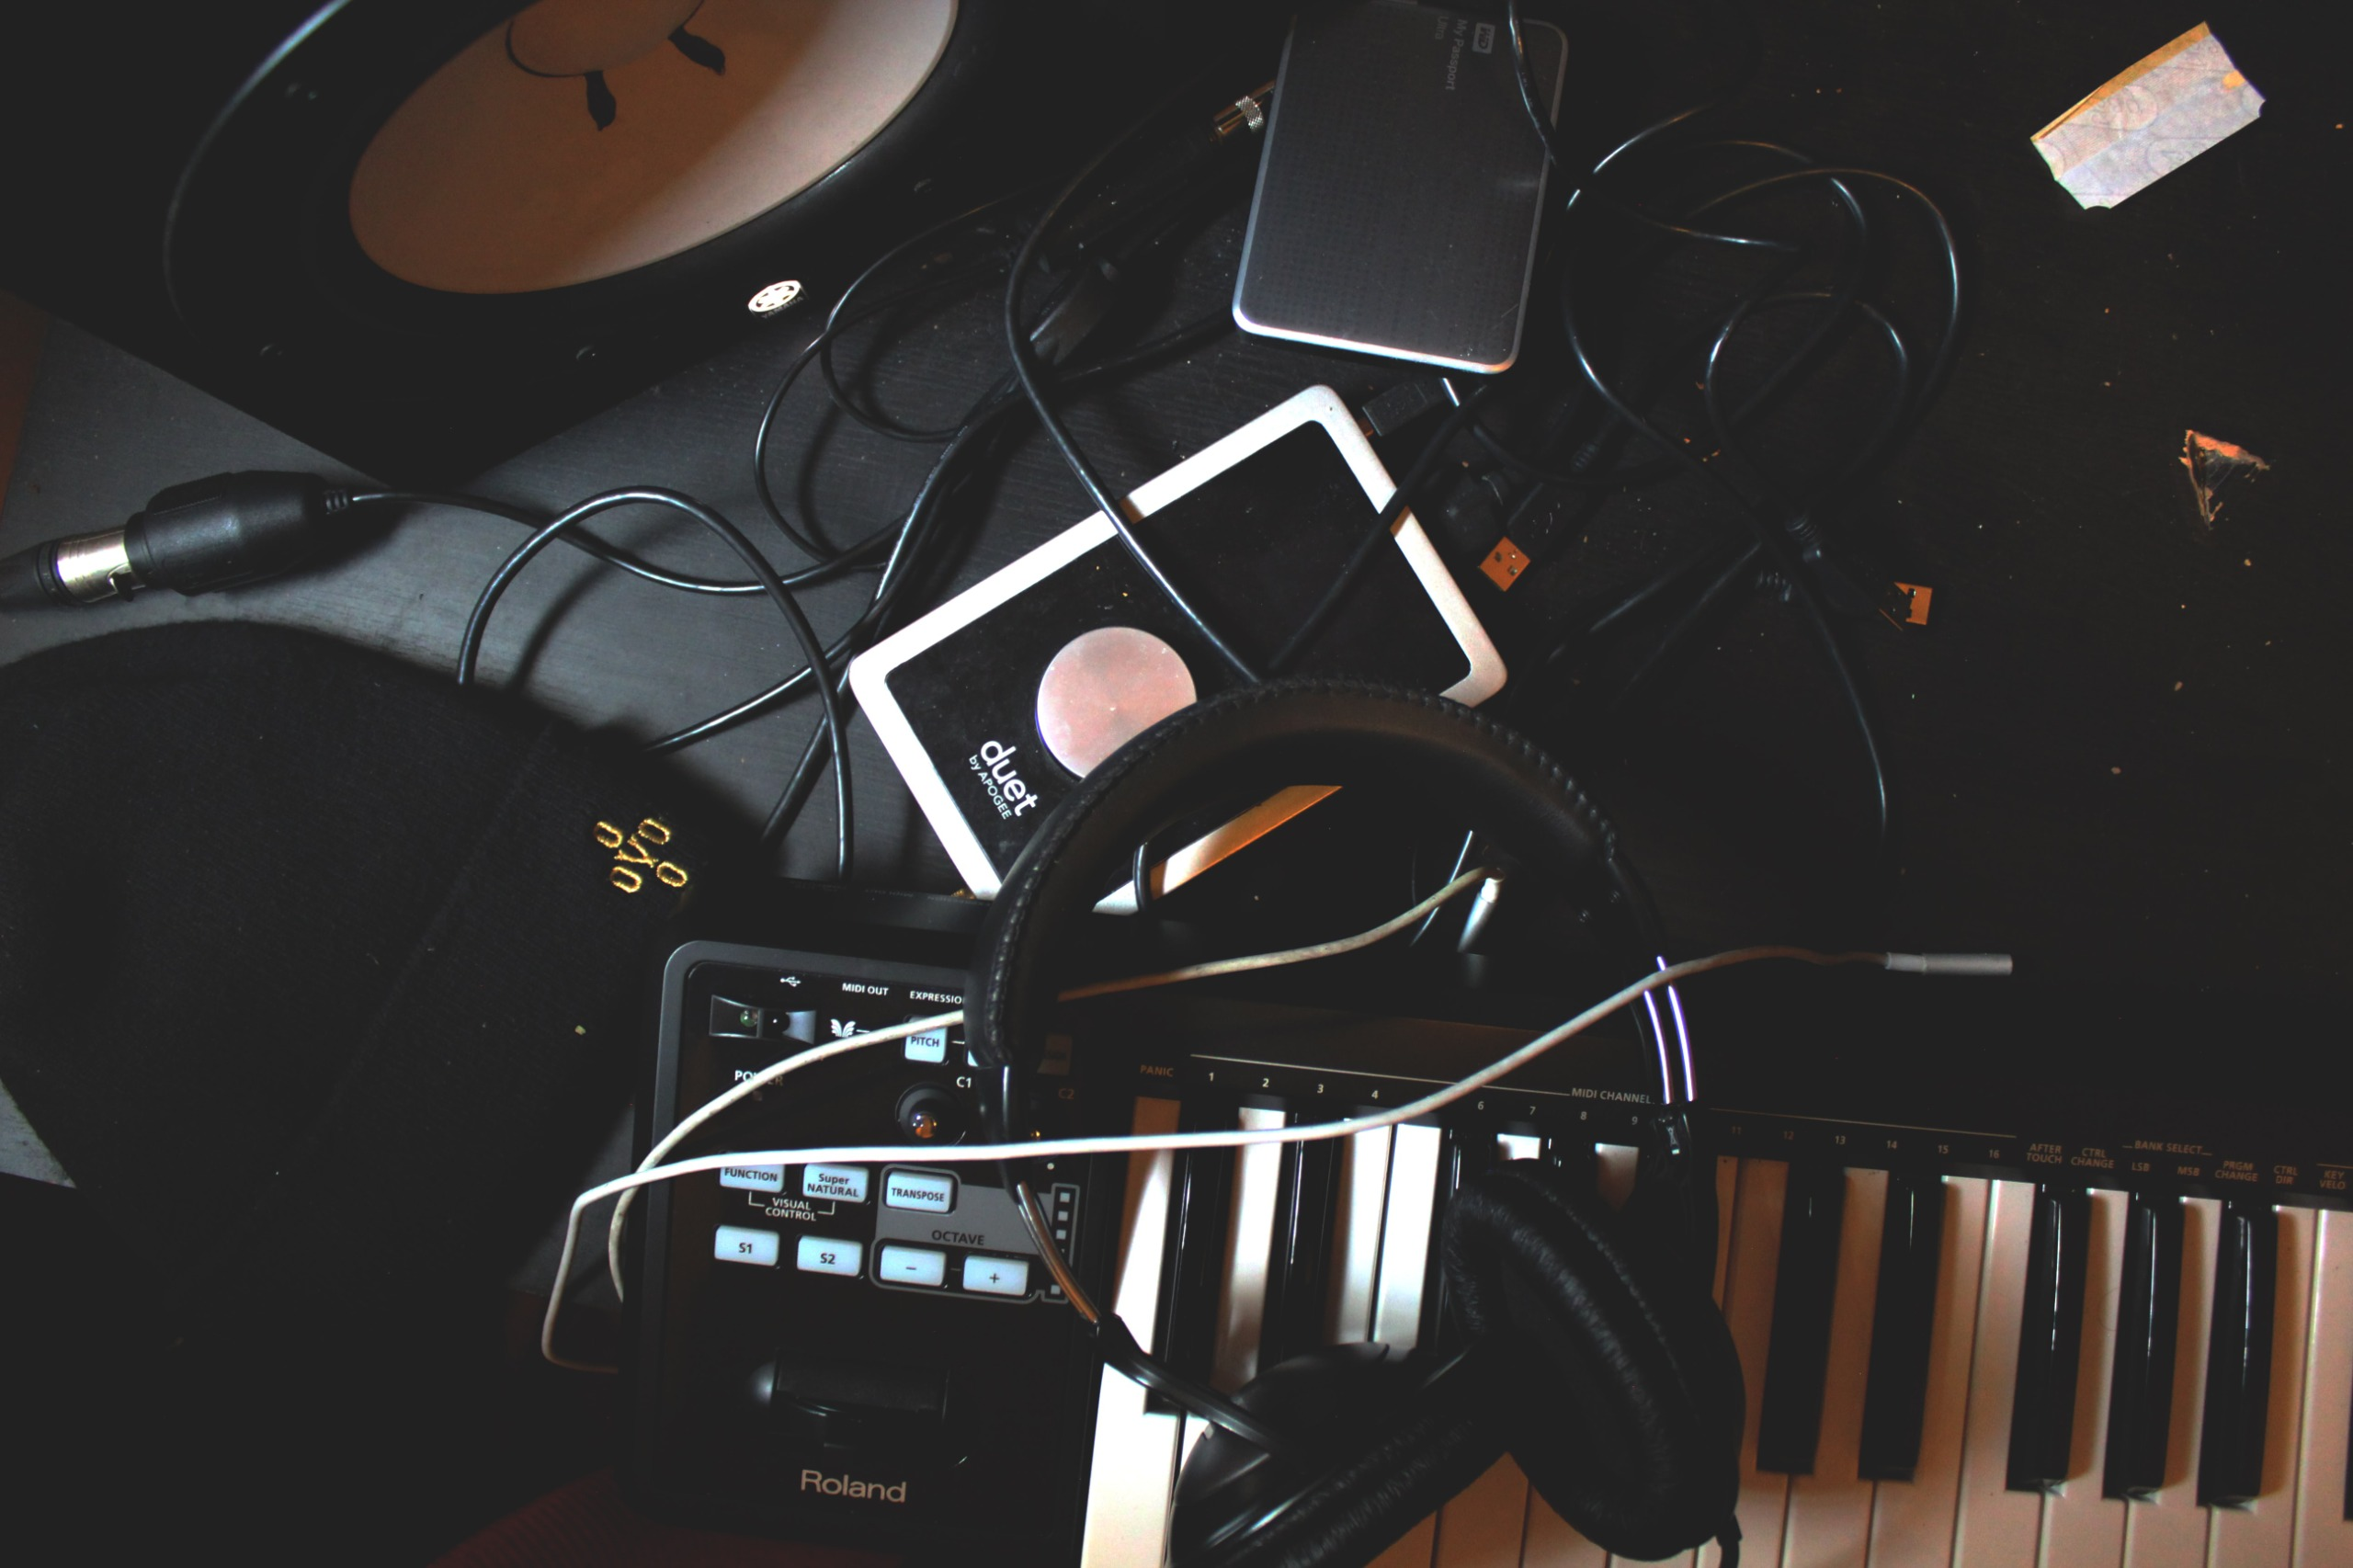 Keyboard and instrument cables